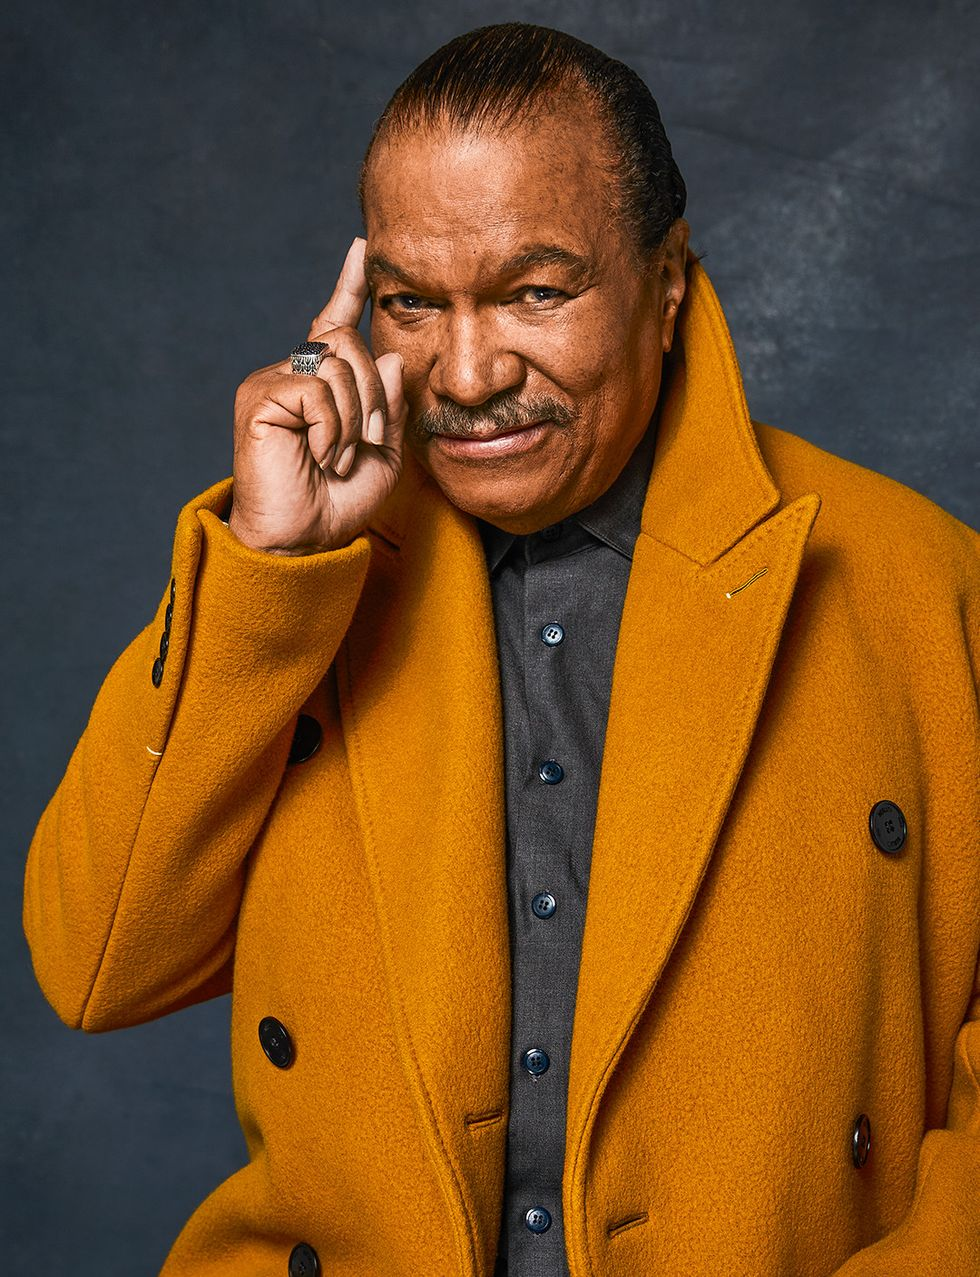 The Enduring, Intergalactic Cool of Billy Dee Williams